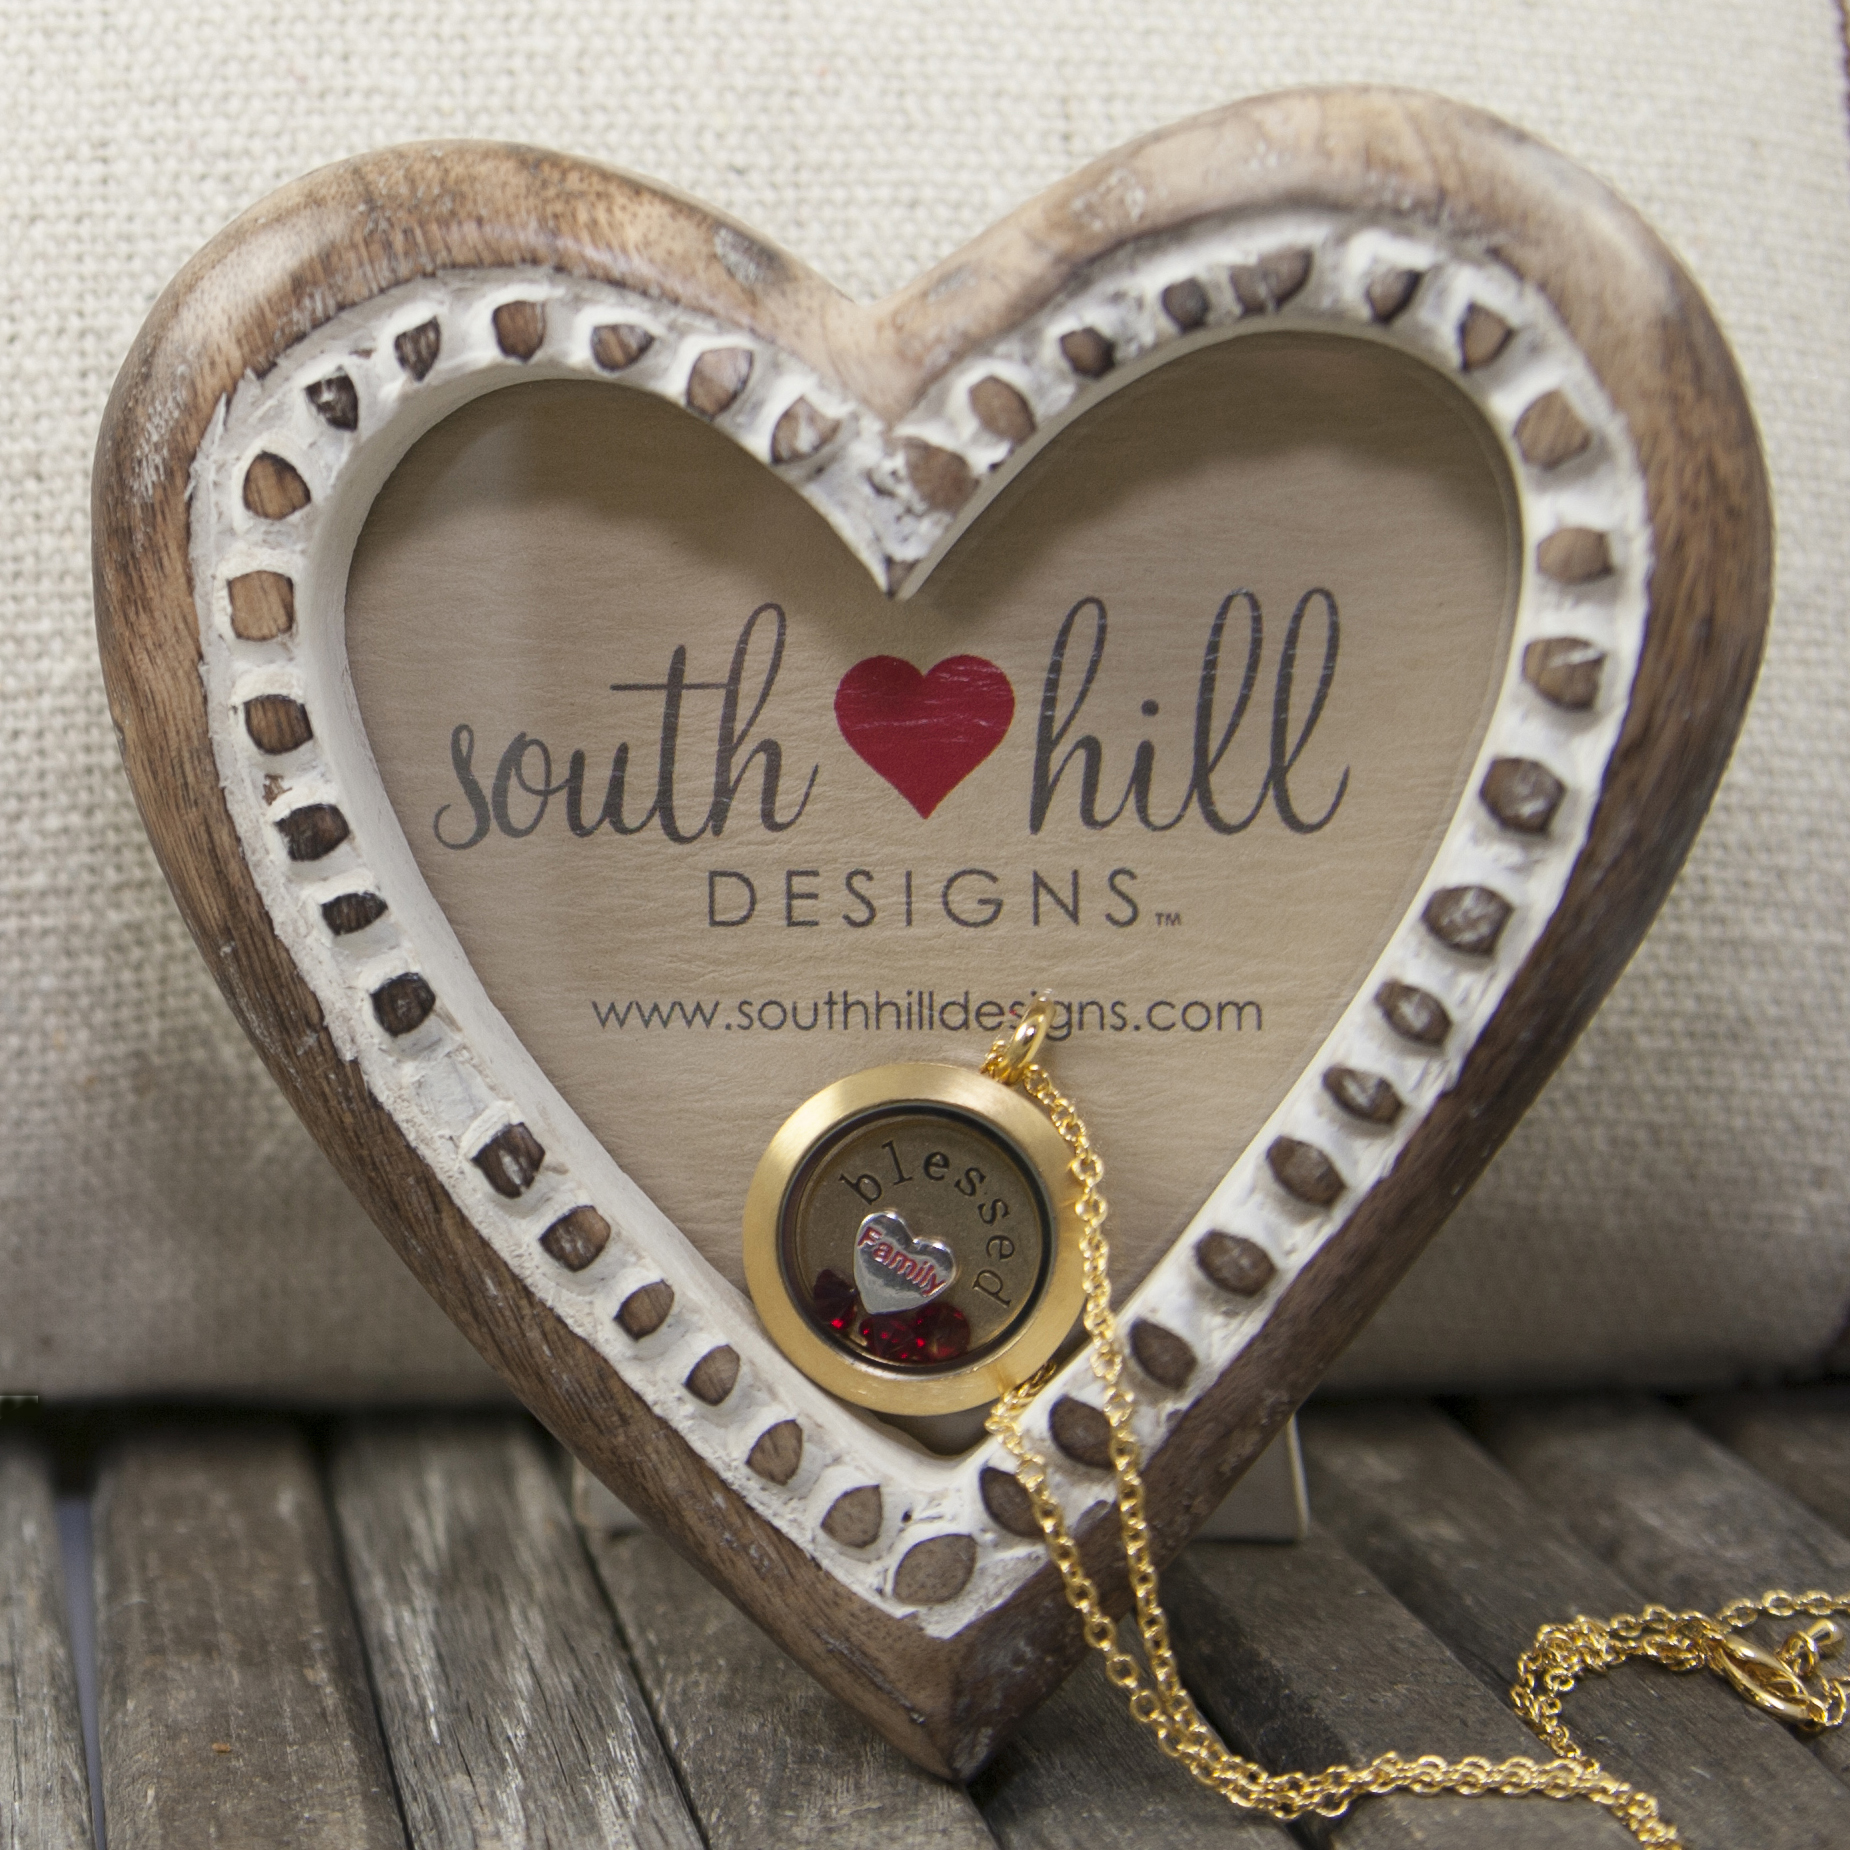 south hill designs plan jewelry company leads in